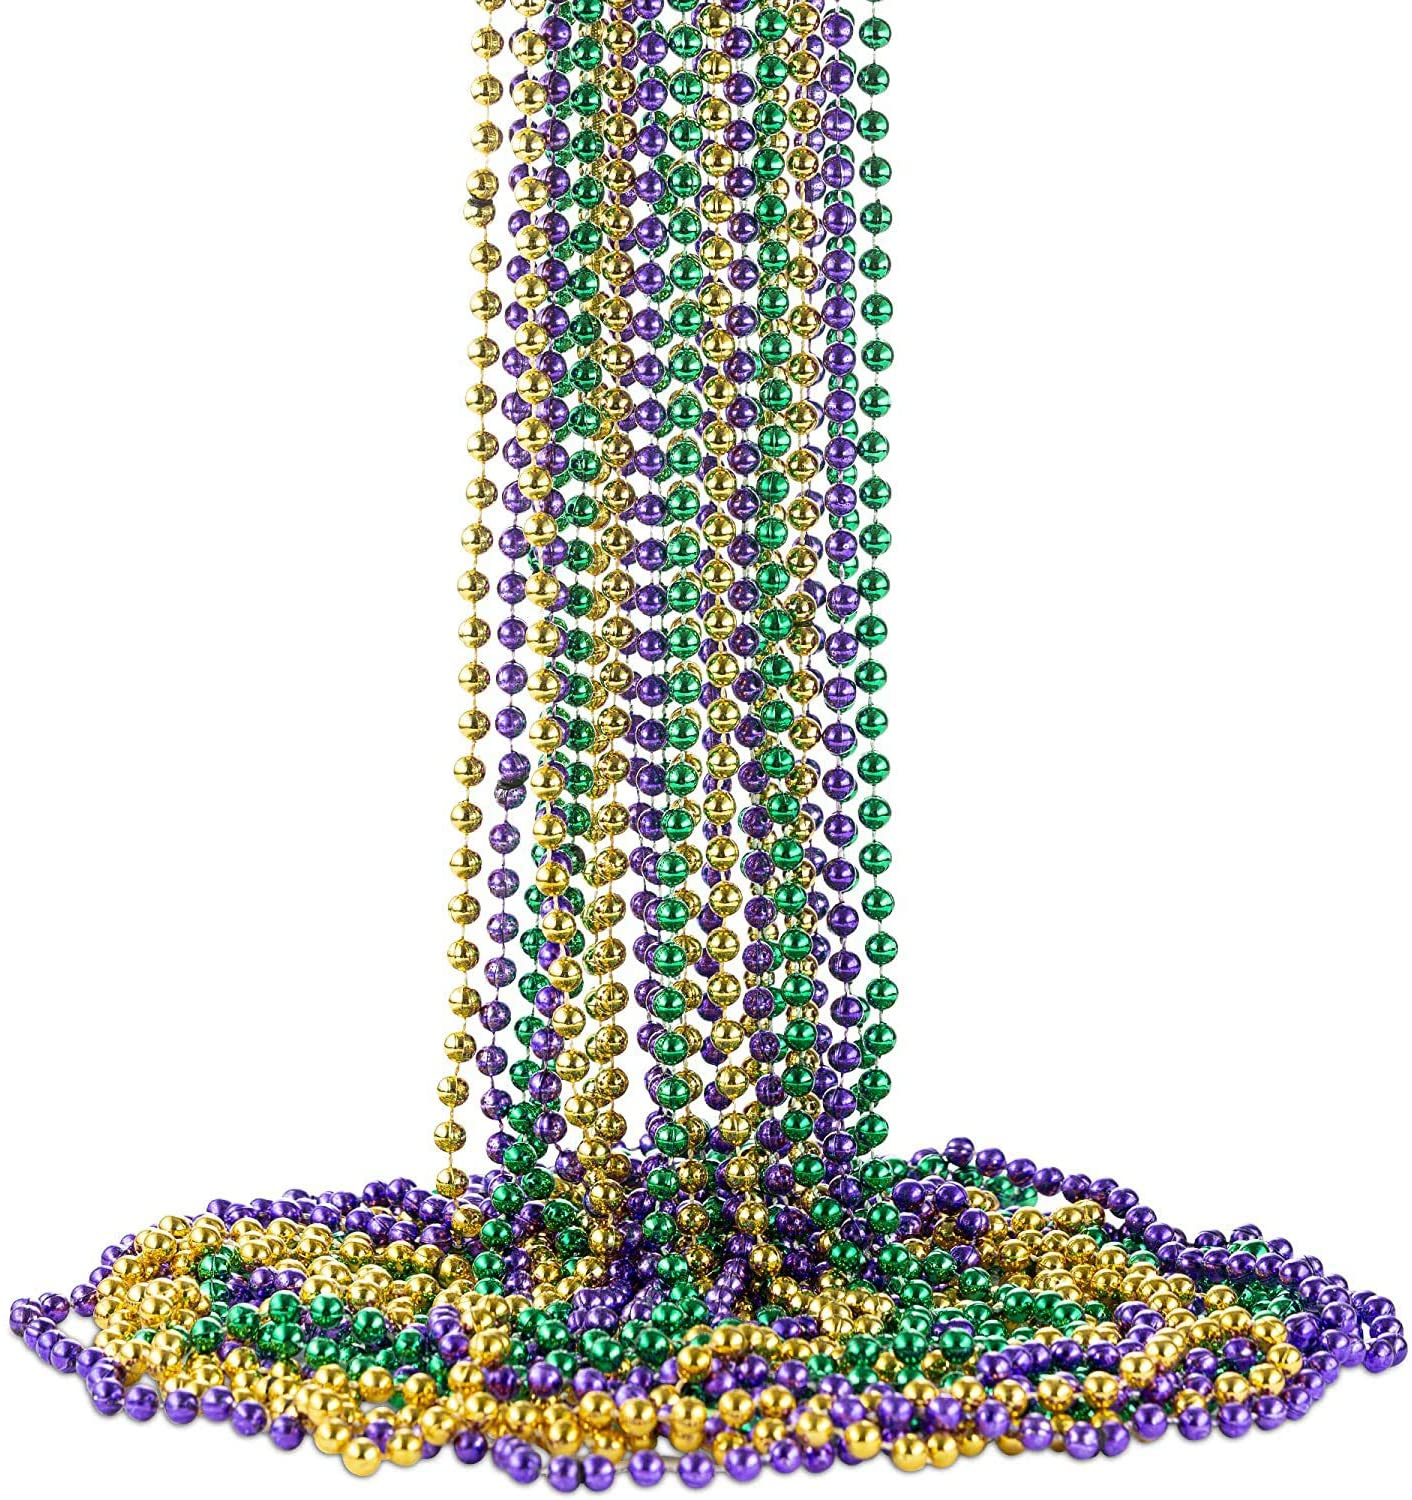 Fashionable Mardi Gras Bead Award-winning store Necklaces 32 Inch Round mm Assorted 7 colorful C